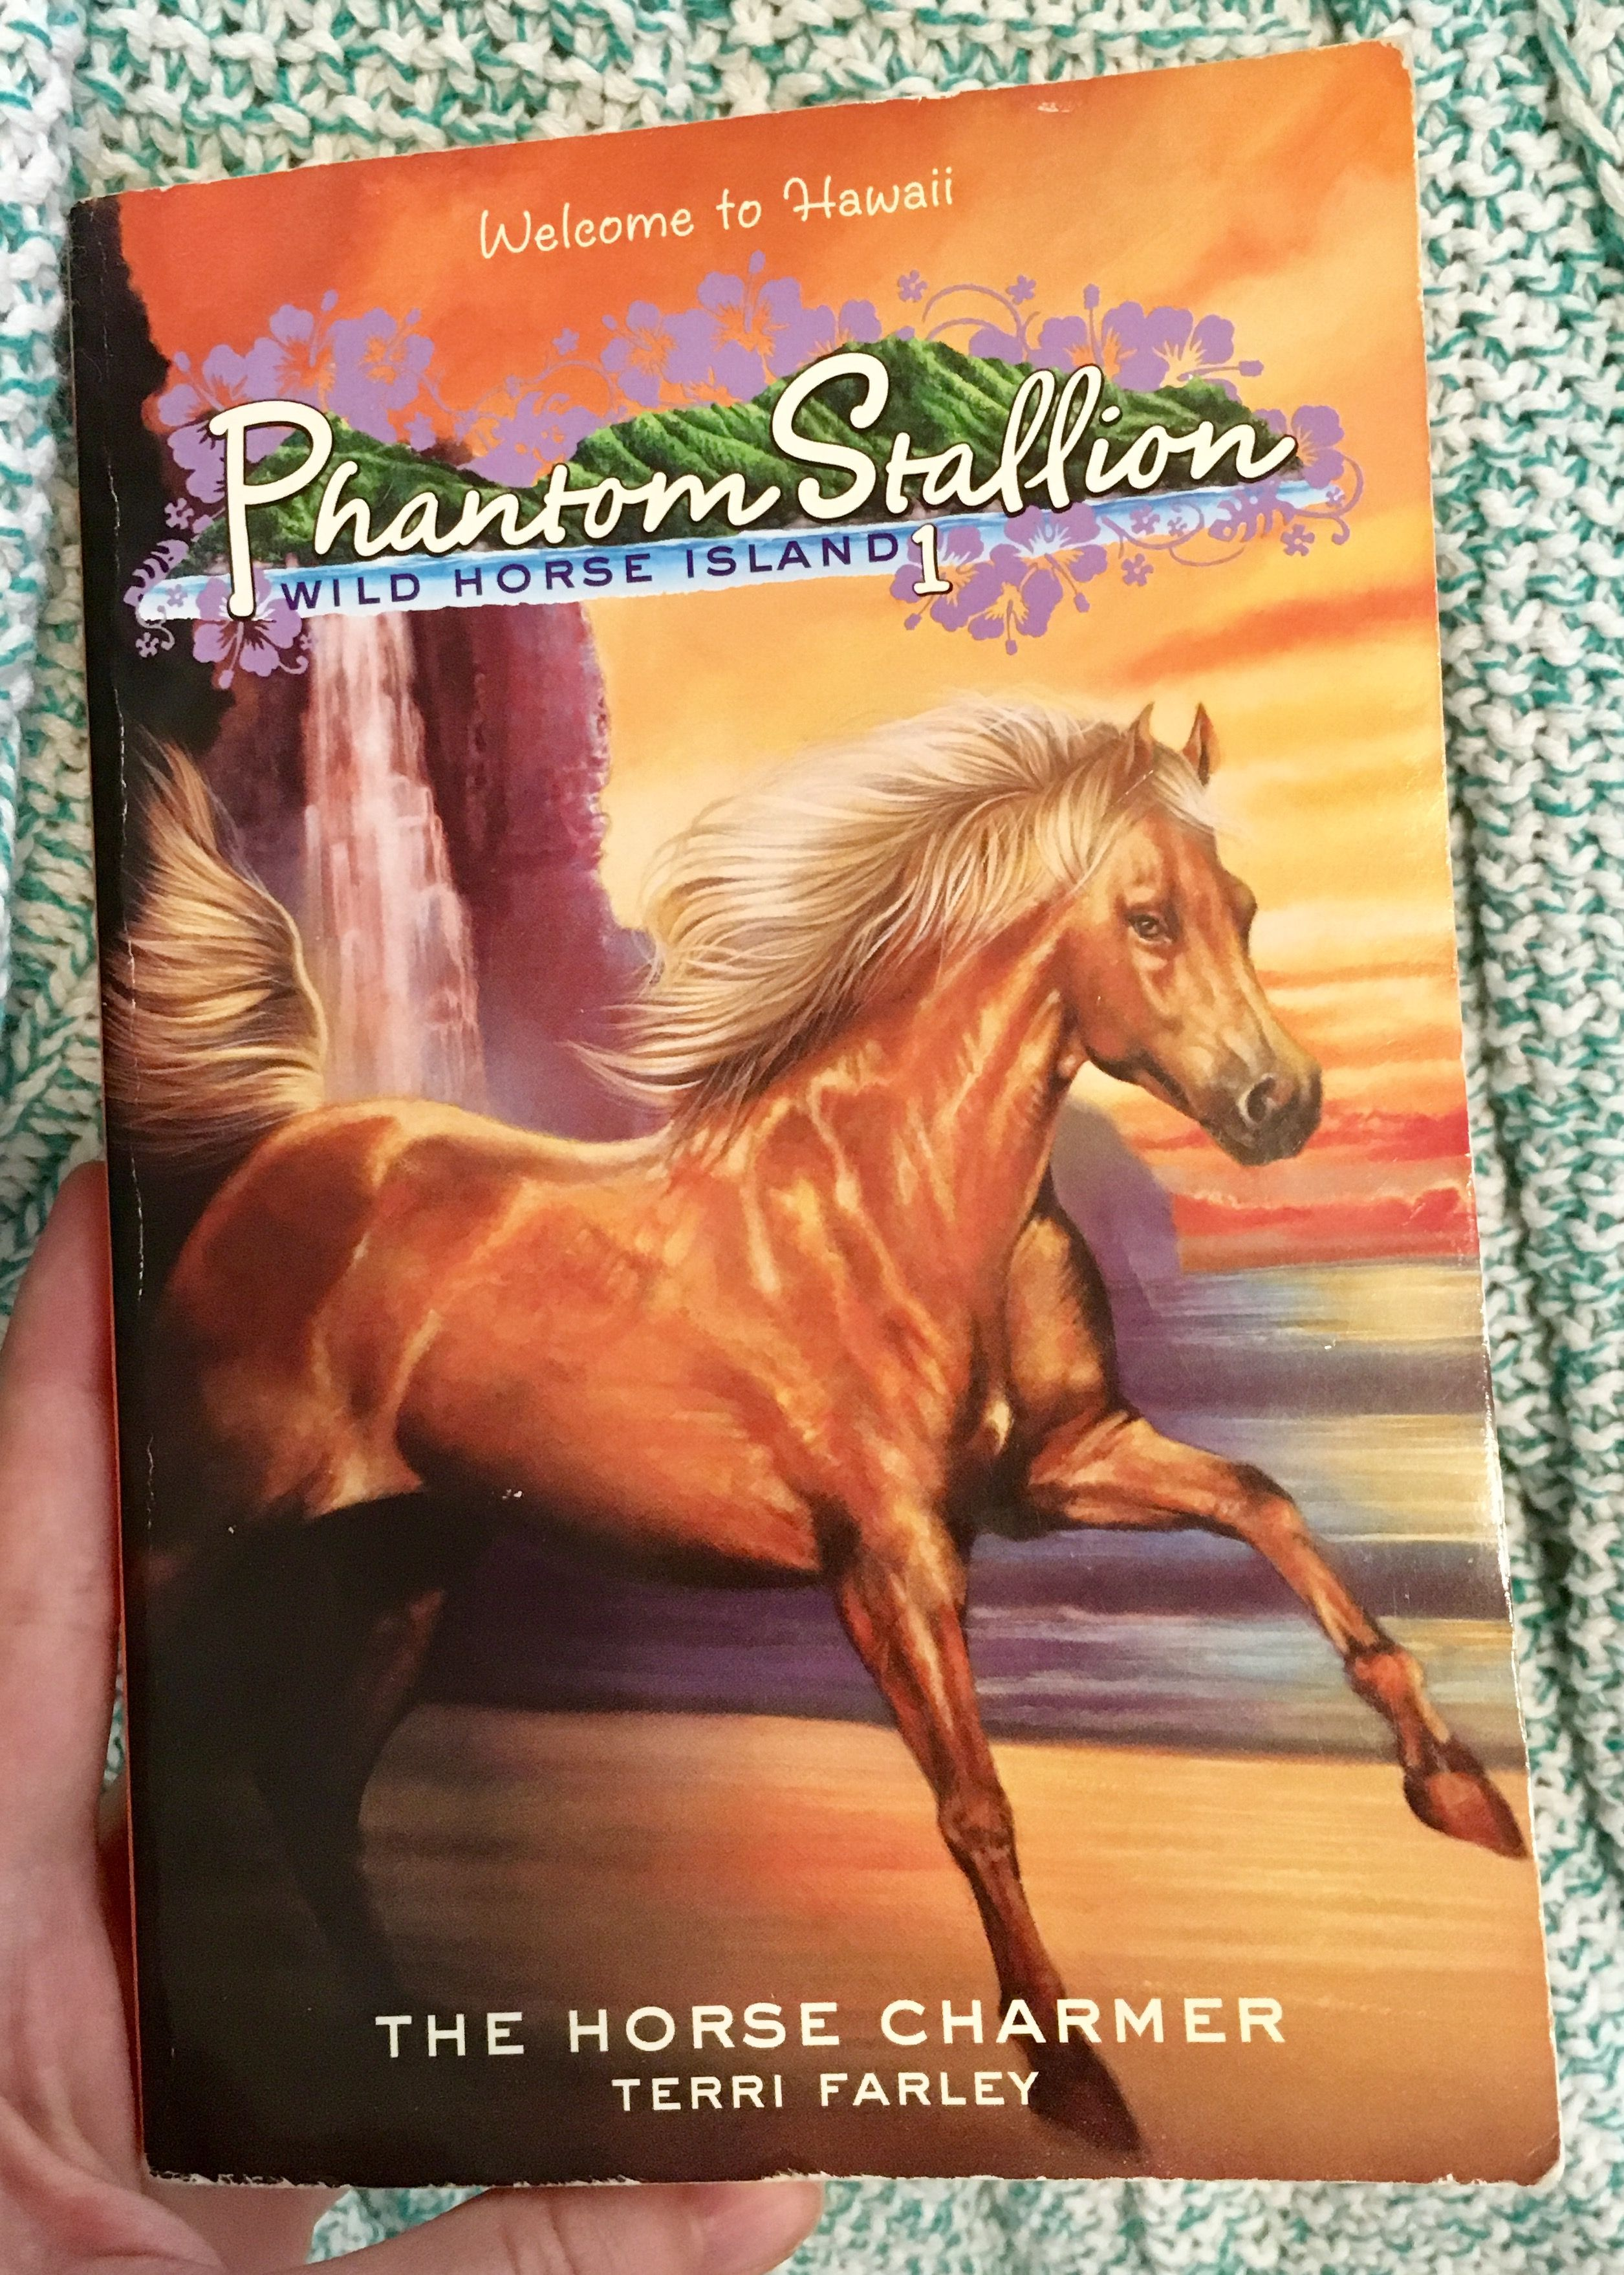 The Horse Charmer Book 1 In The Phantom Stallion Wild